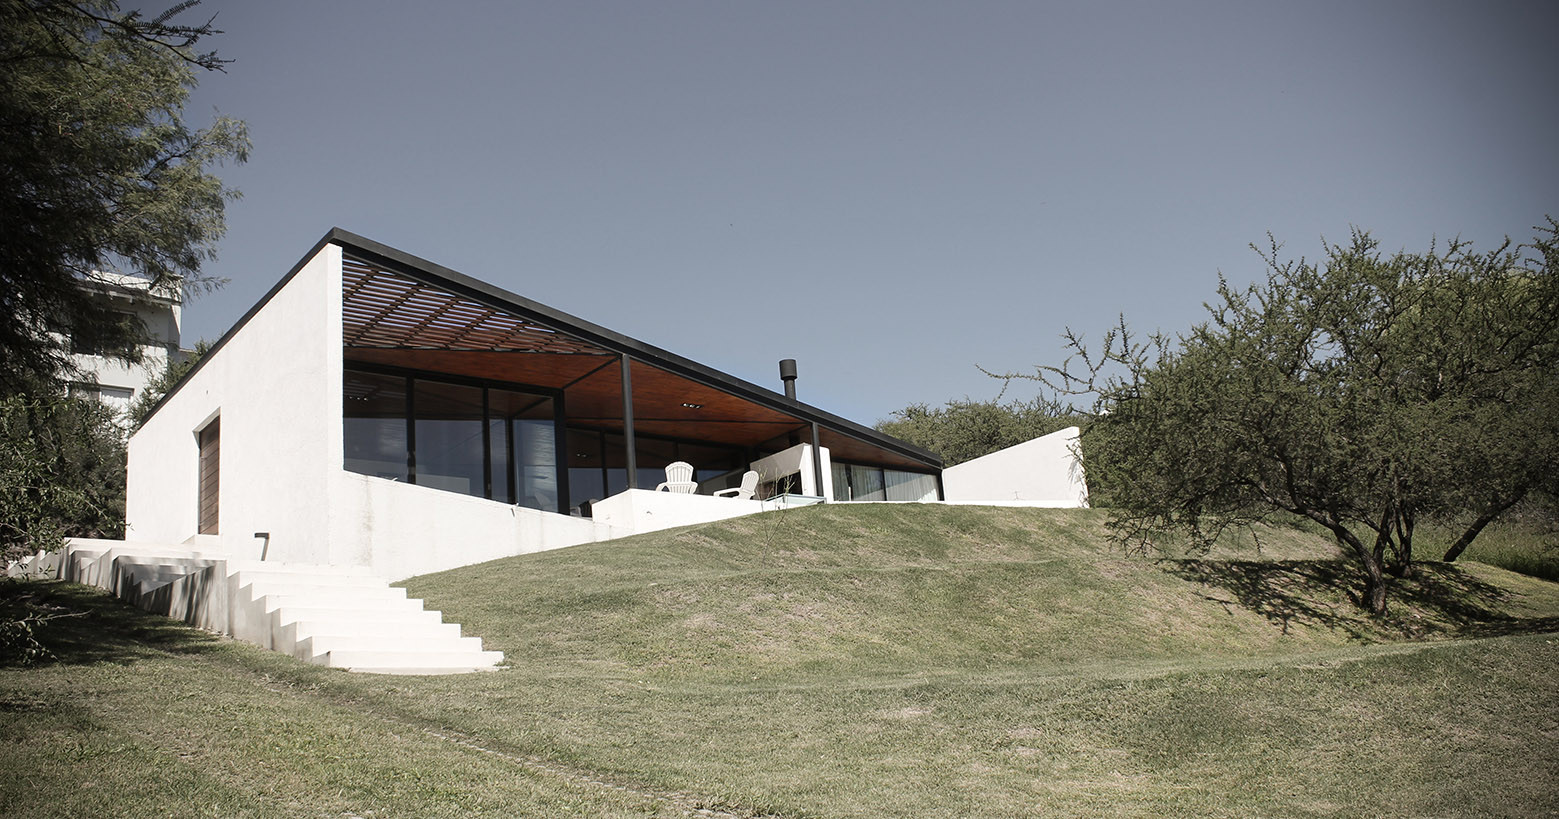 SZ House / AlarciaFerrer Arquitectos, Courtesy of Lucas Carranza